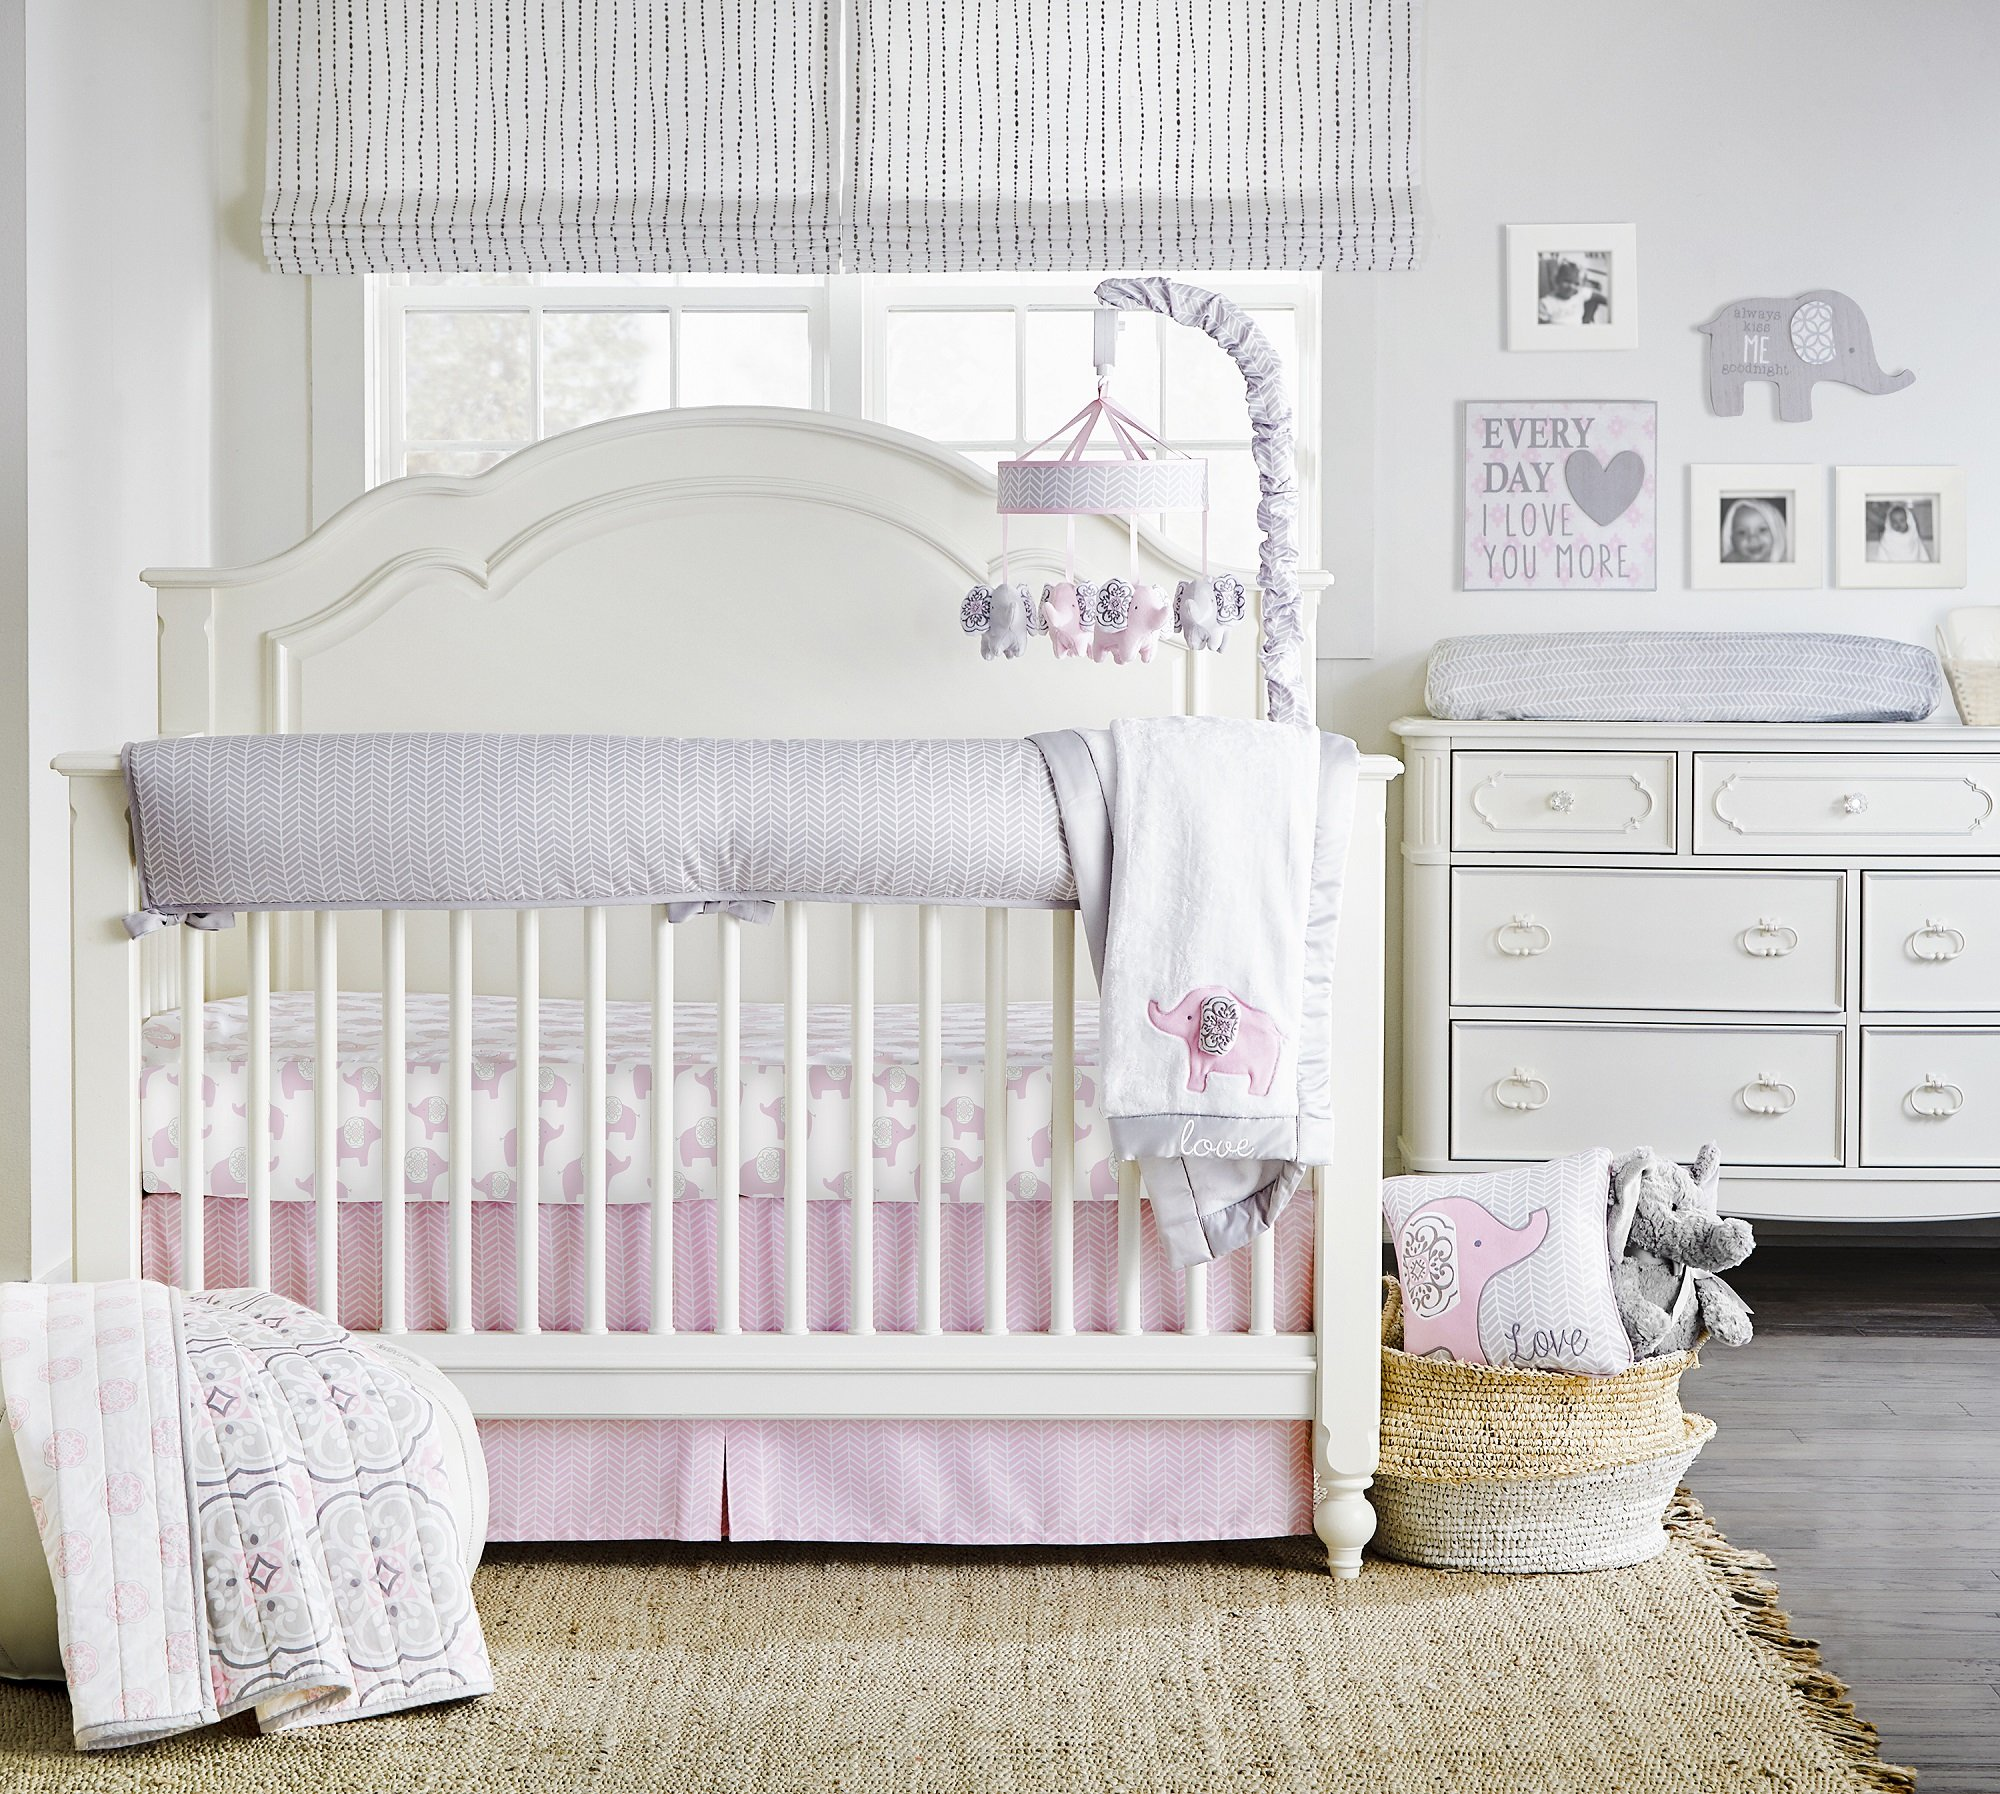 Wendy Bellissimo Baby Mobile Crib Mobile Musical Mobile – Elephant Mobile from The Elodie Collection in Pink and Grey